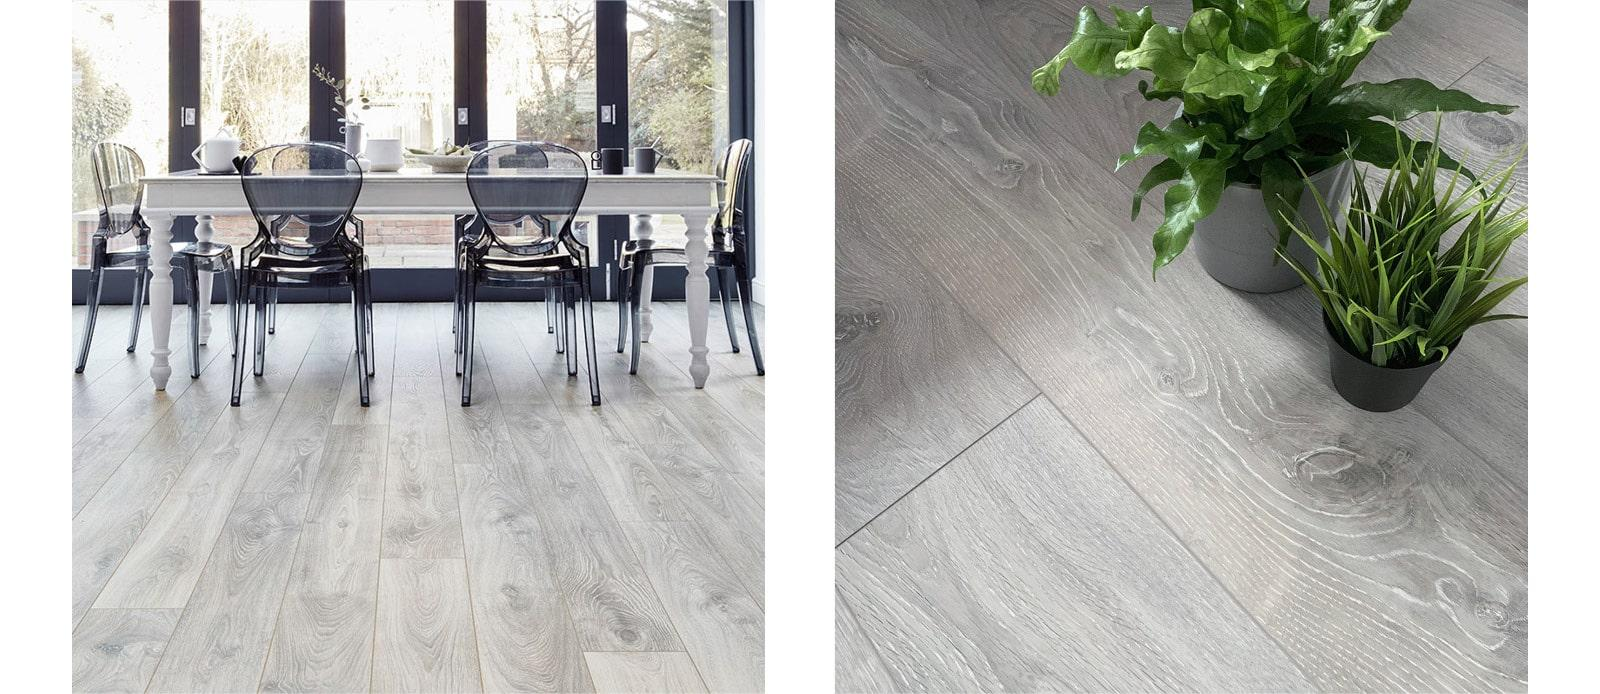 Types Of Kitchen Flooring Uk, What Is The Best Laminate Flooring For Kitchen